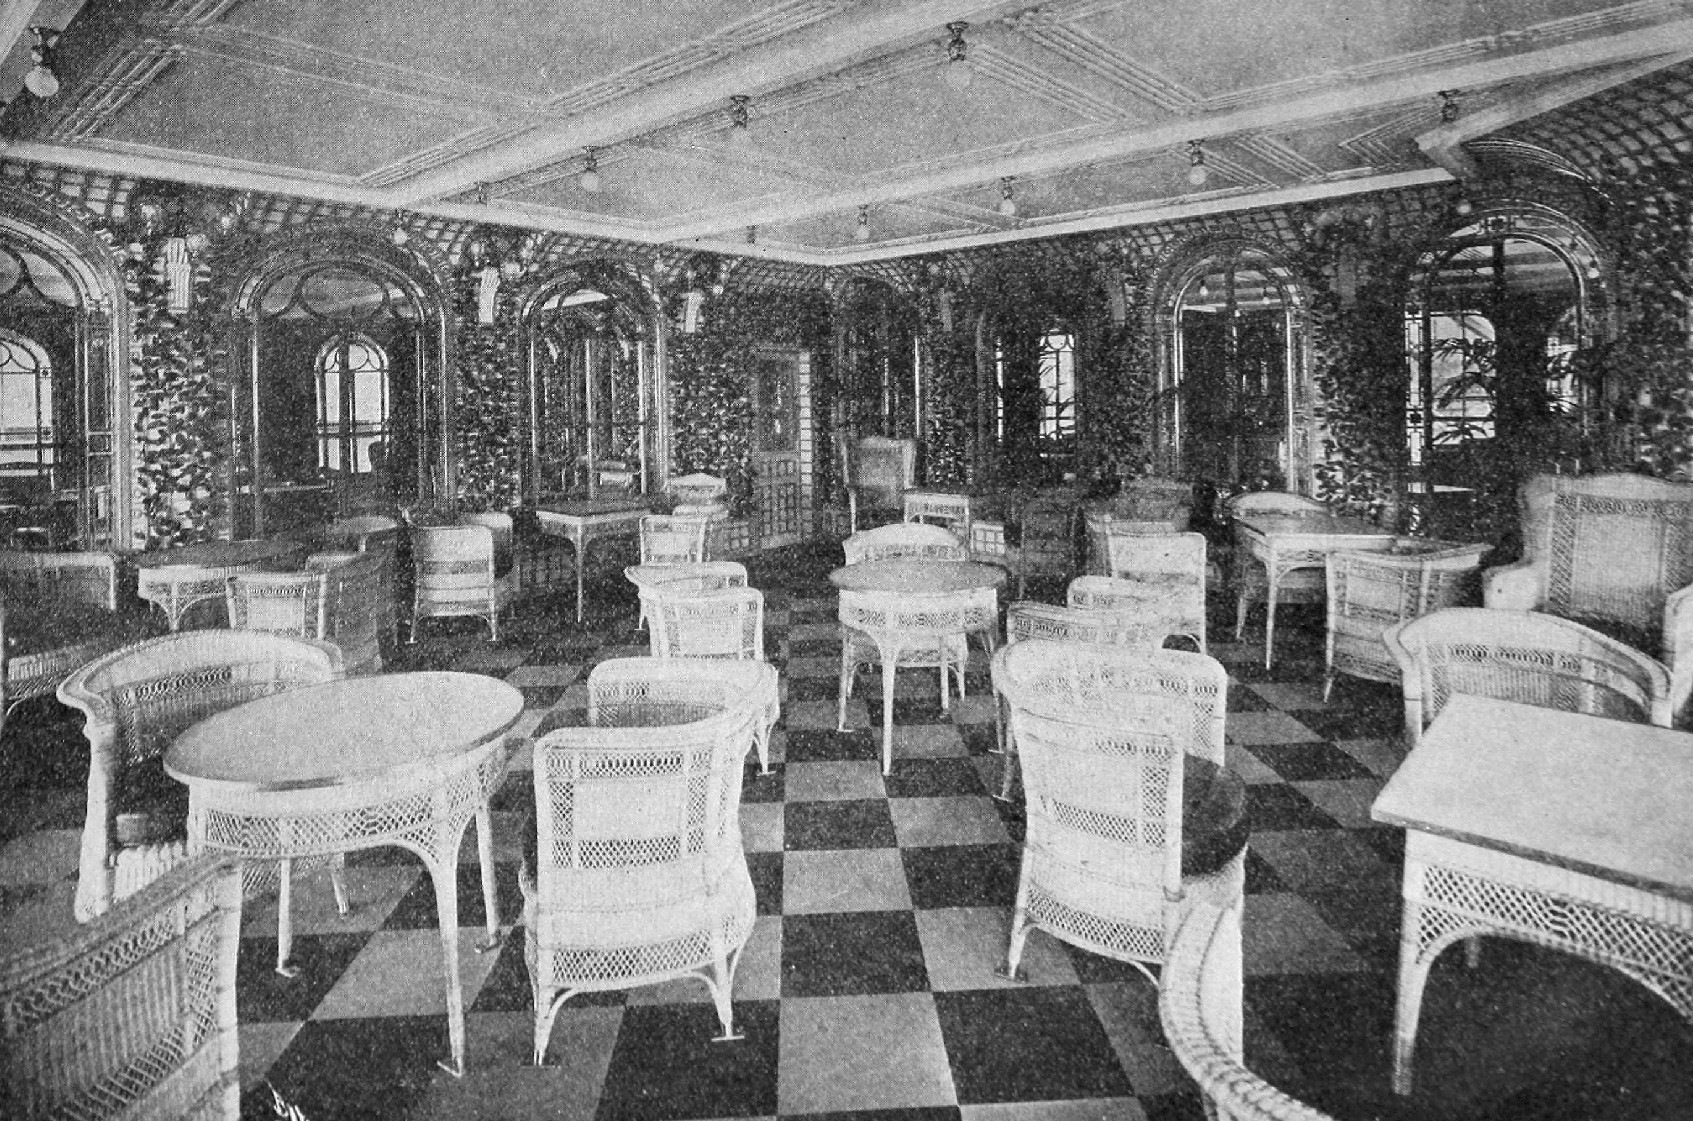 The Concert Room. This was a ladies' only lounge where women could read and listen to music.